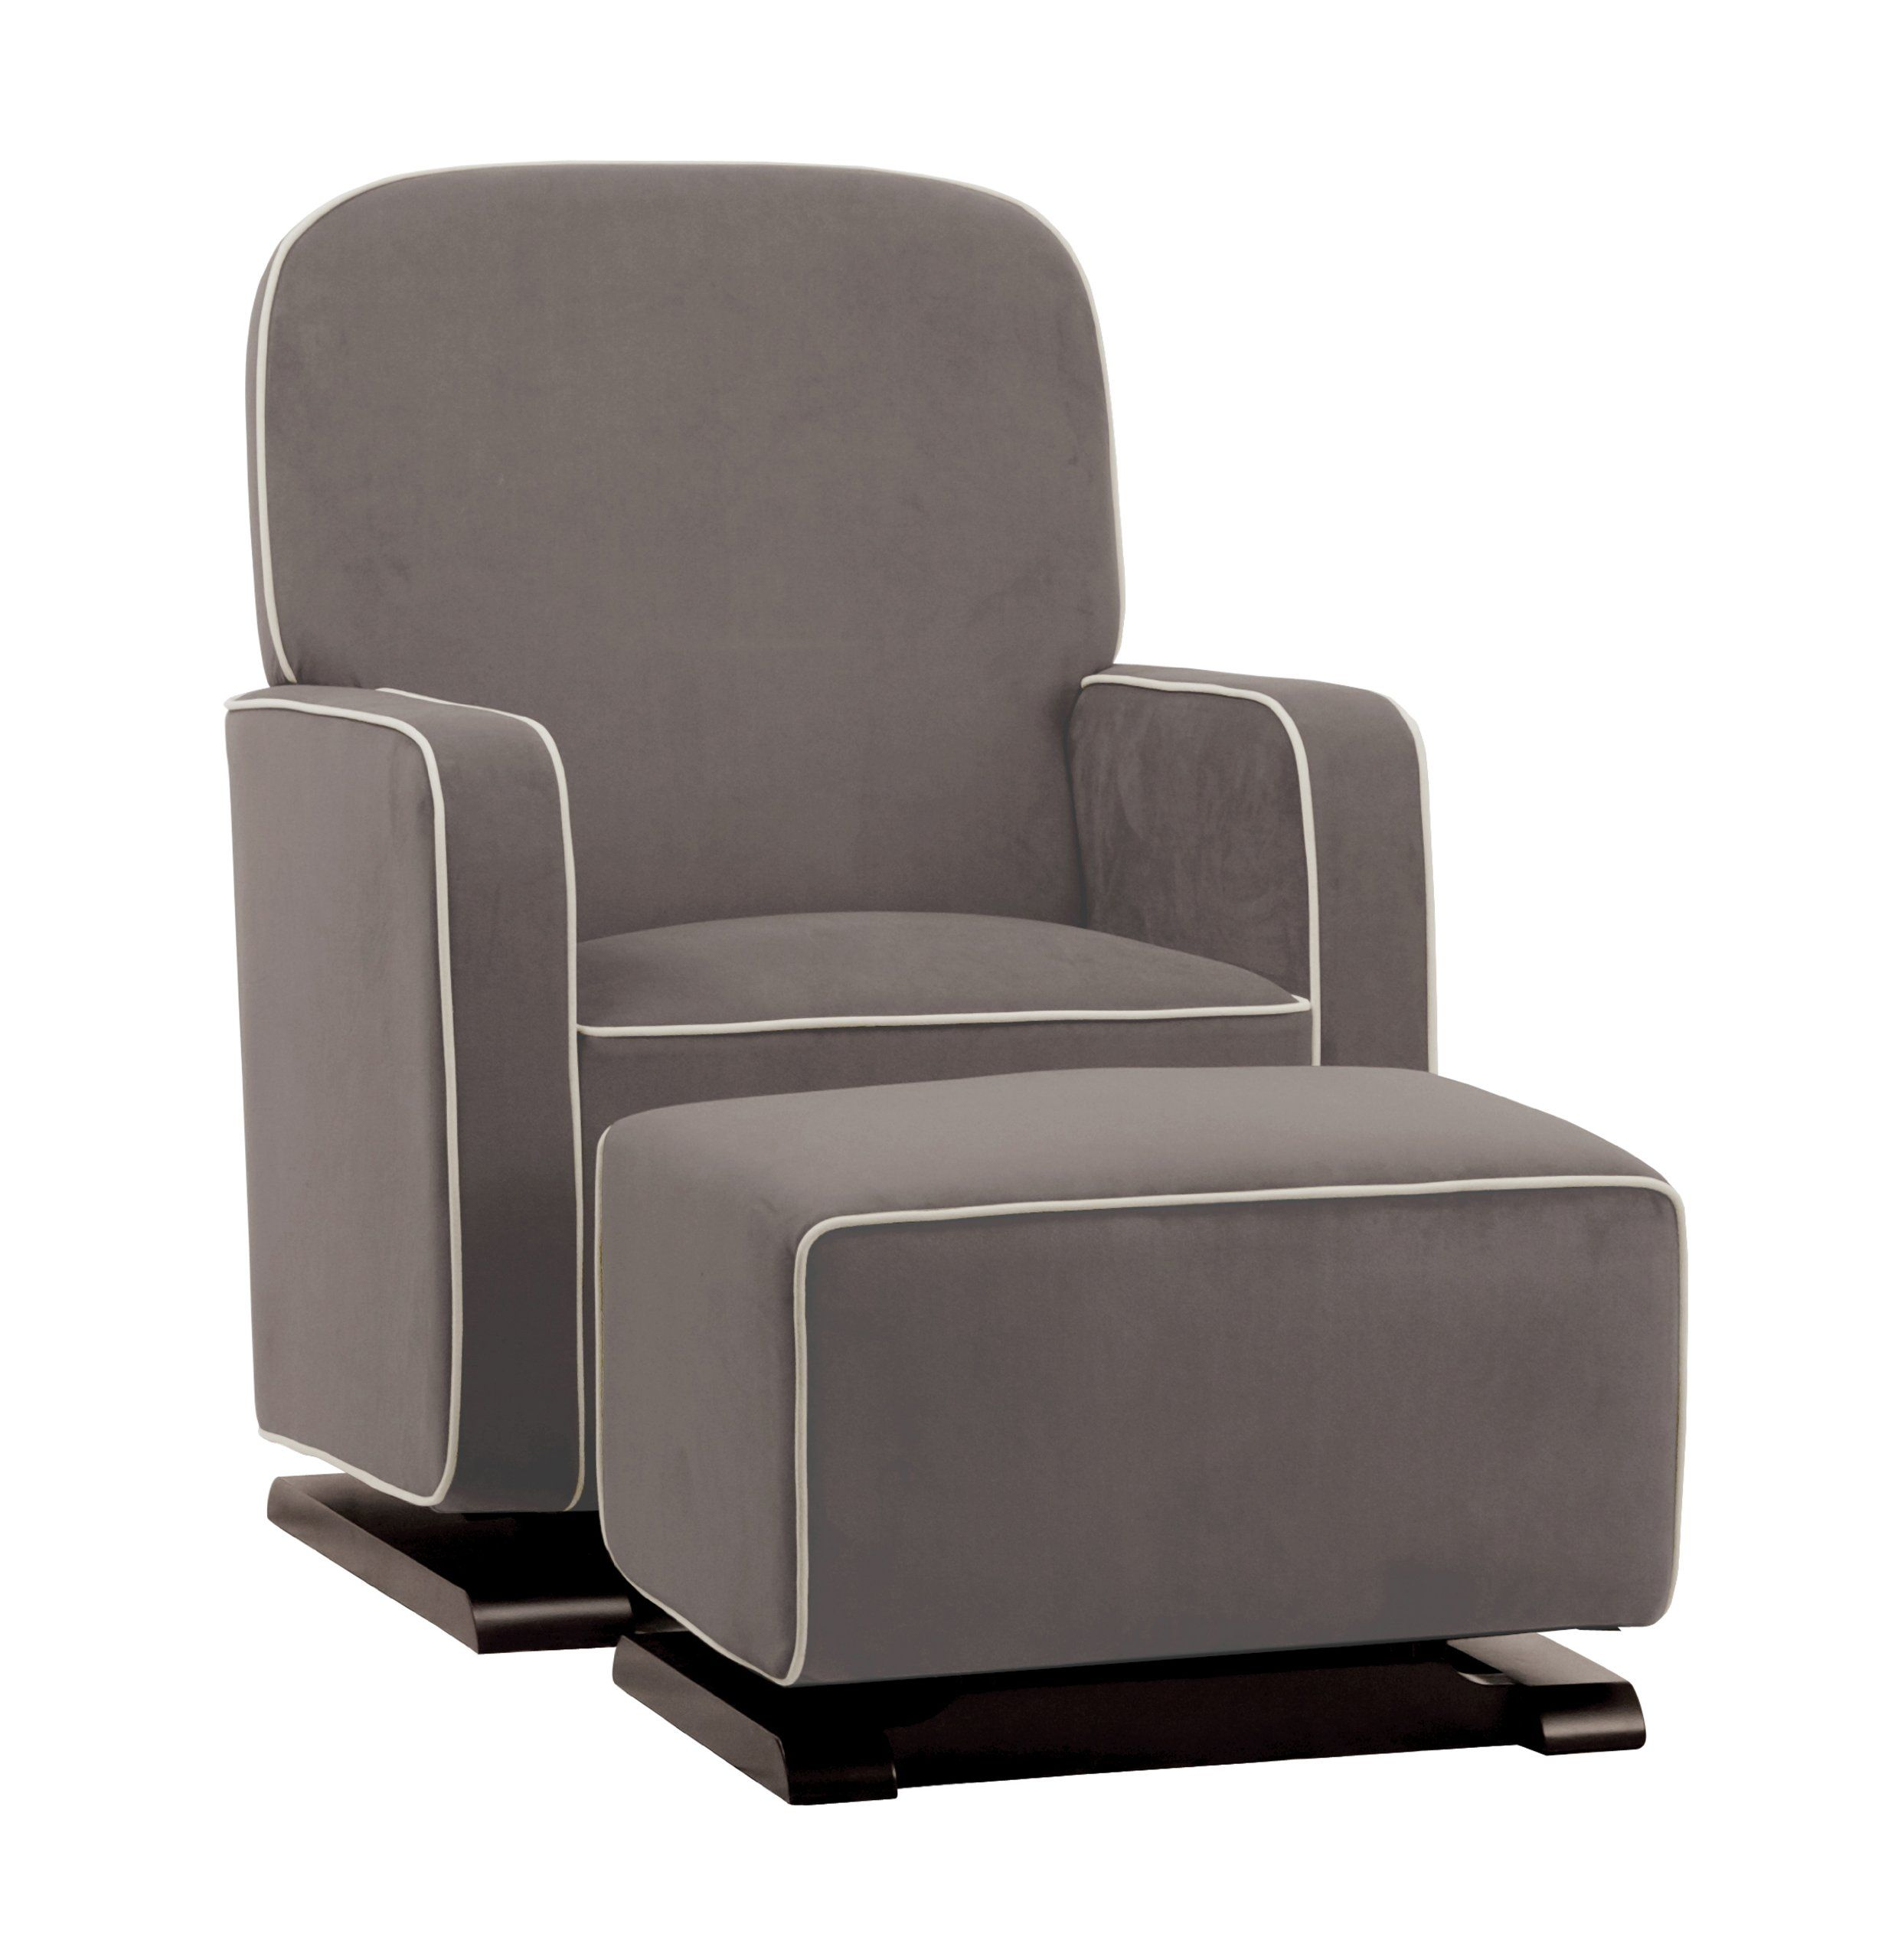 Amazon.com: babyletto Kyoto Glider, Slate Suede with Ecru Piping: Baby